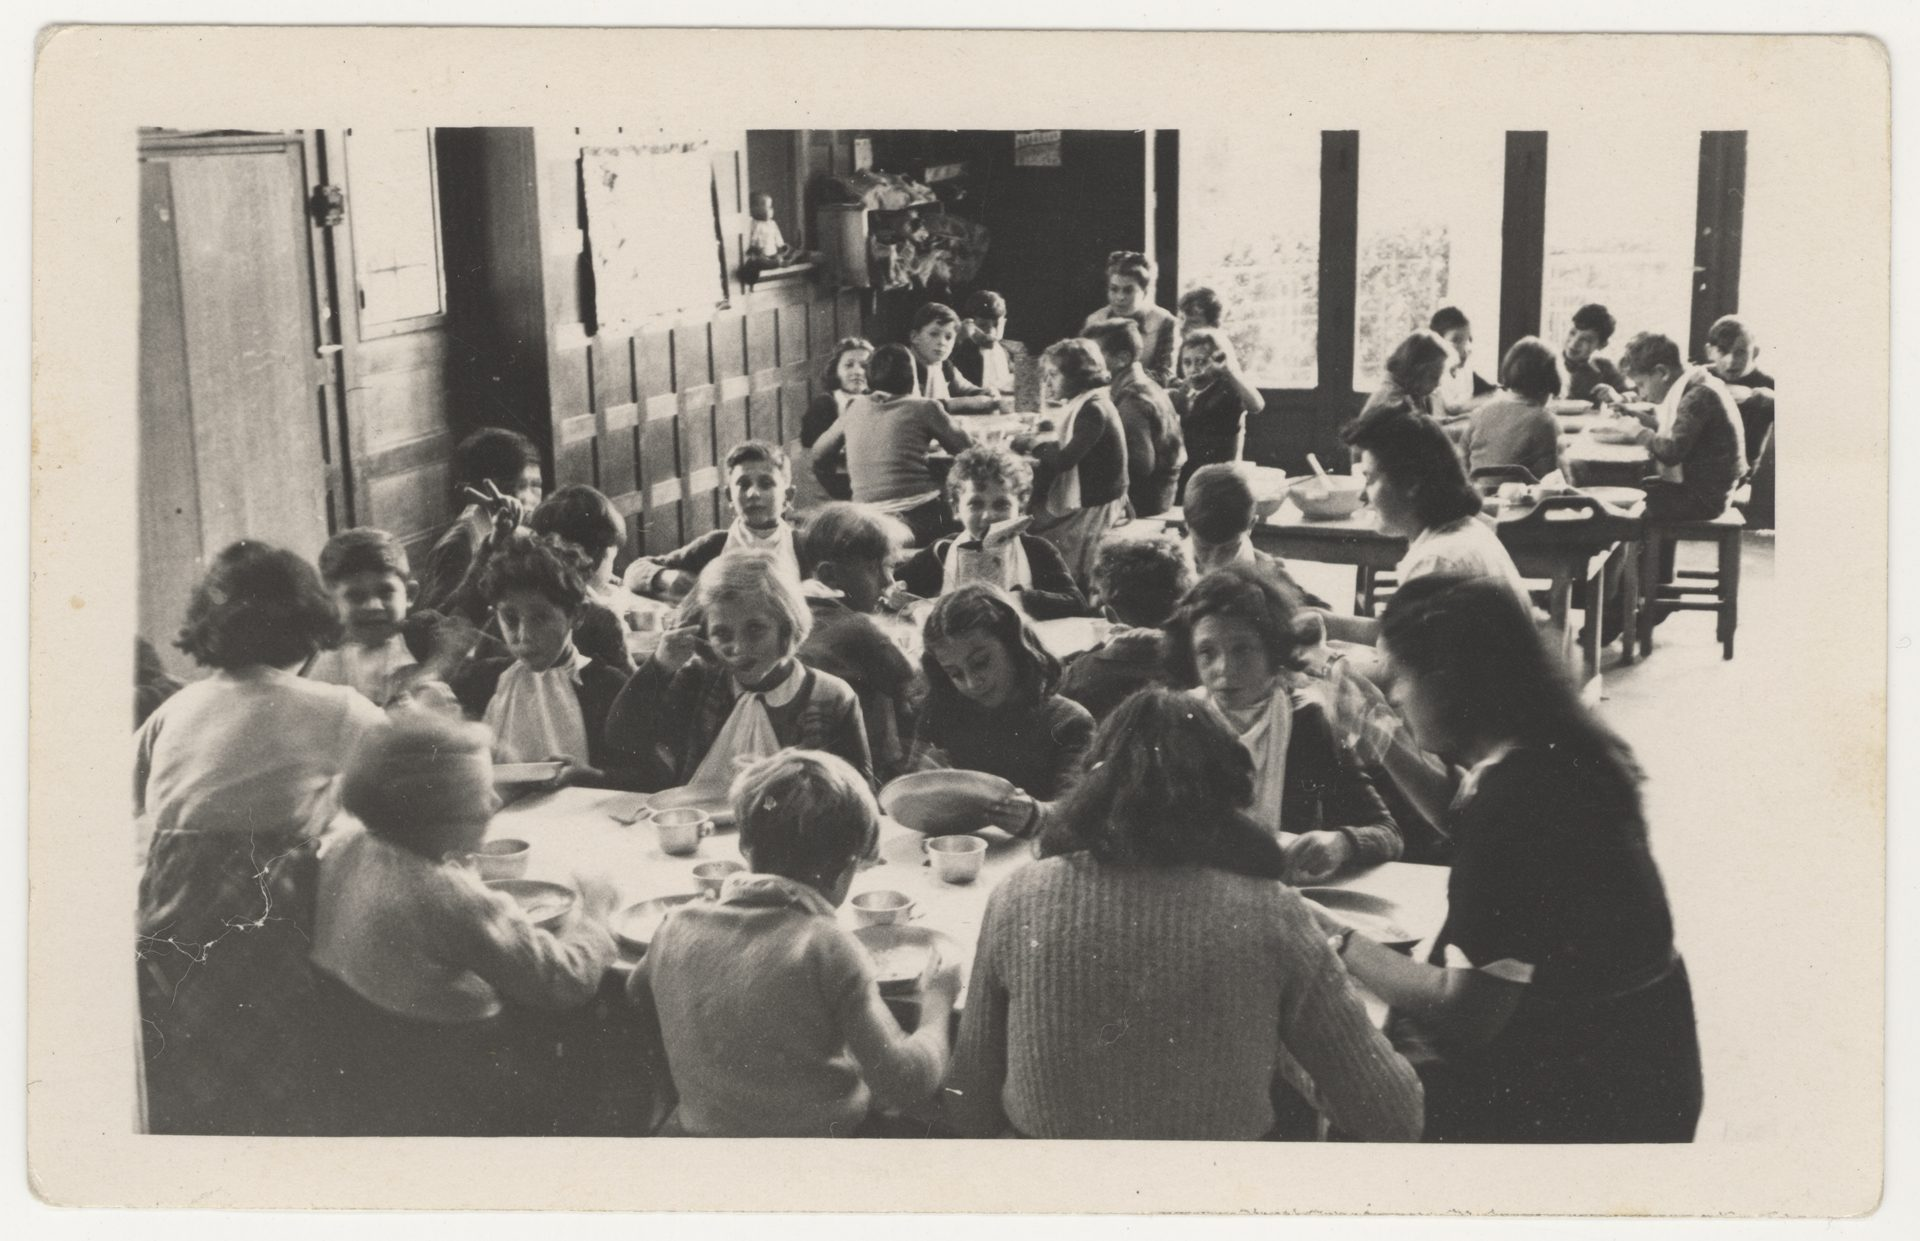 Photograph was taken in 1945 at the OSE (''Oeuvre de secours aux enfants'') orphanage in Andrésy, a town located north-west of Paris, France. Celinka Zilberbogen sits at the first table and looks at the camera while eating.